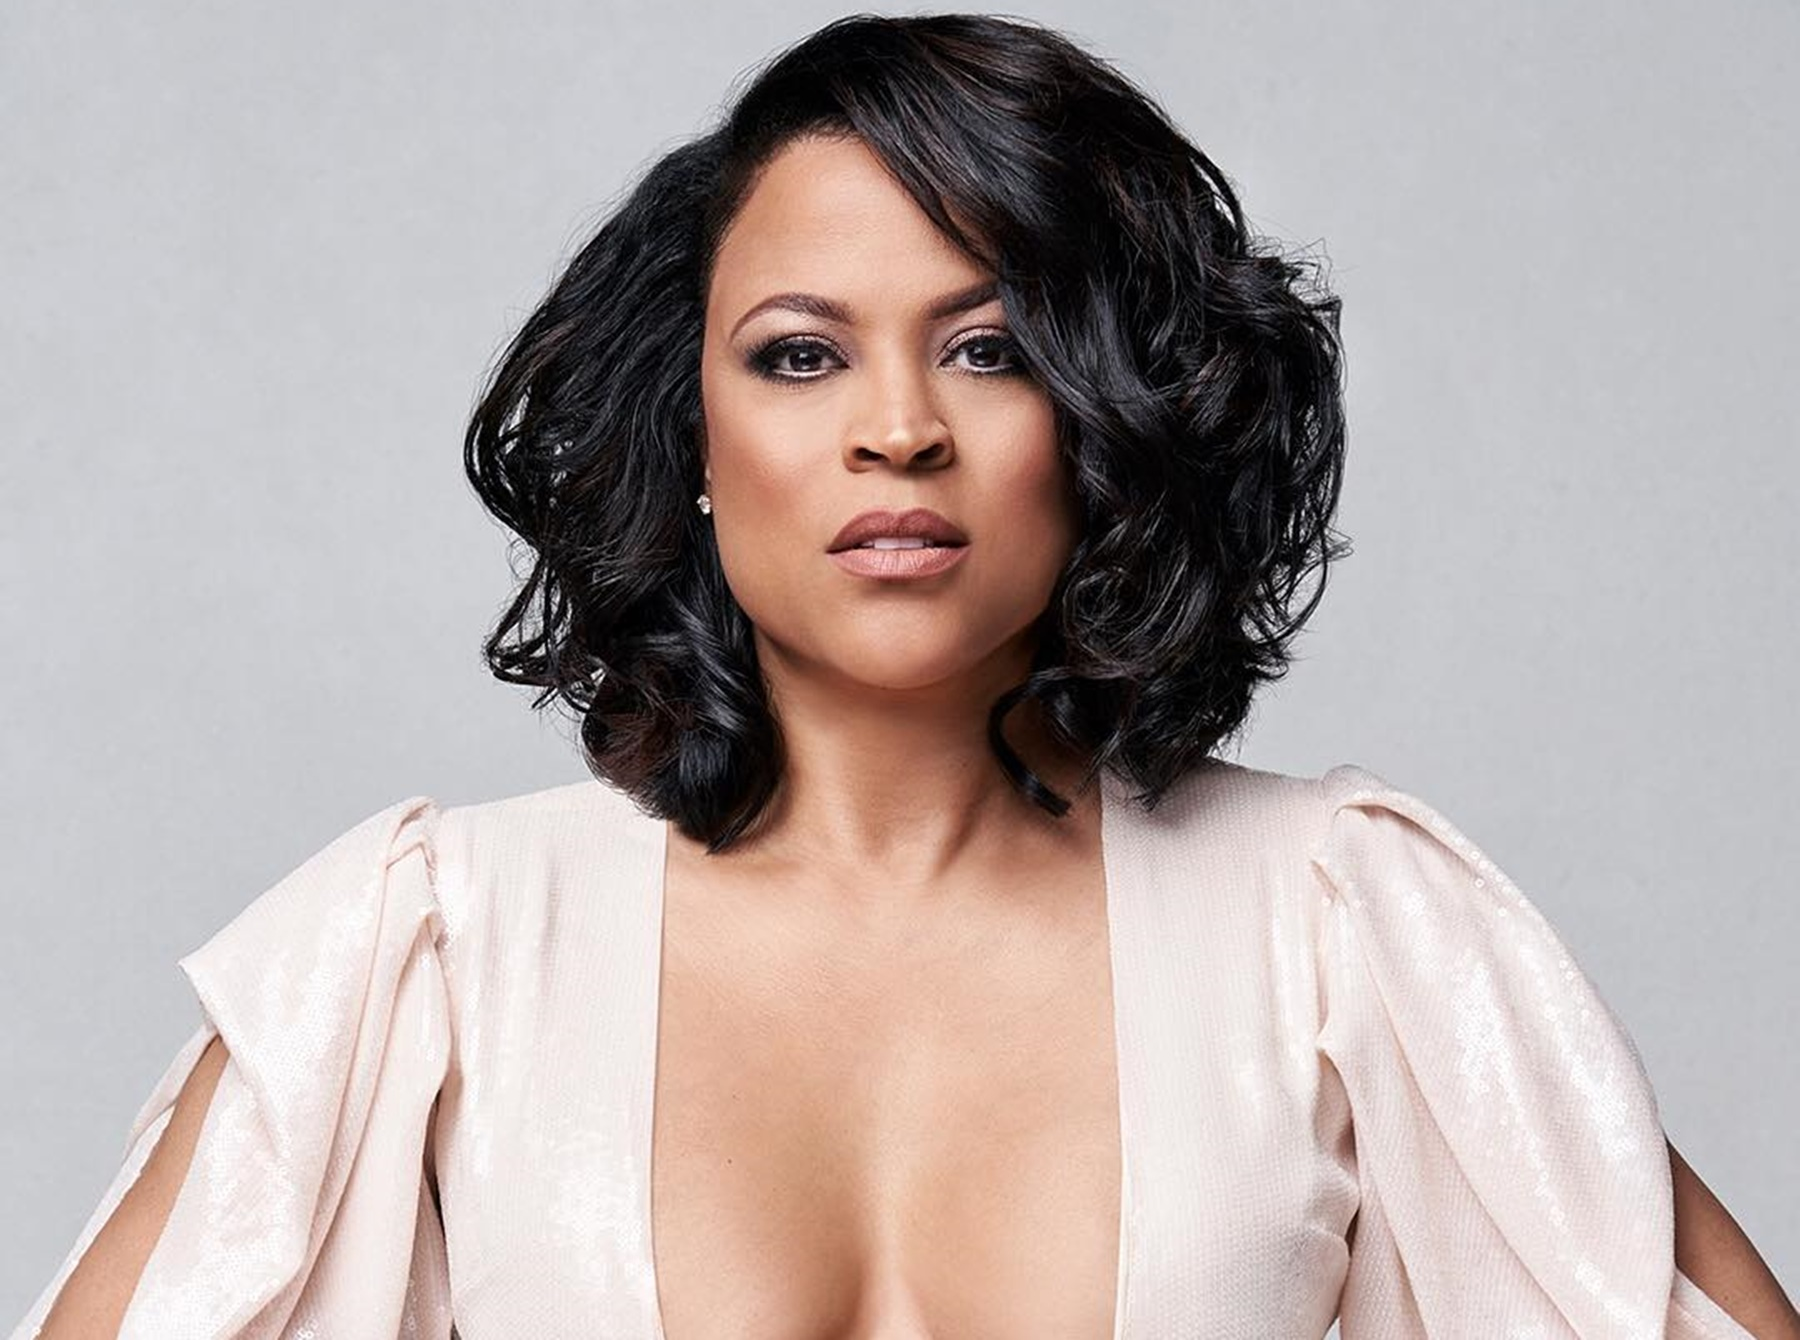 shaunie-oneal-is-unrecognizable-in-racy-salt-n-pepa-costume-and-basketball-wives-star-evelyn-lozada-is-loving-all-of-this-will-shaq-react-to-the-video